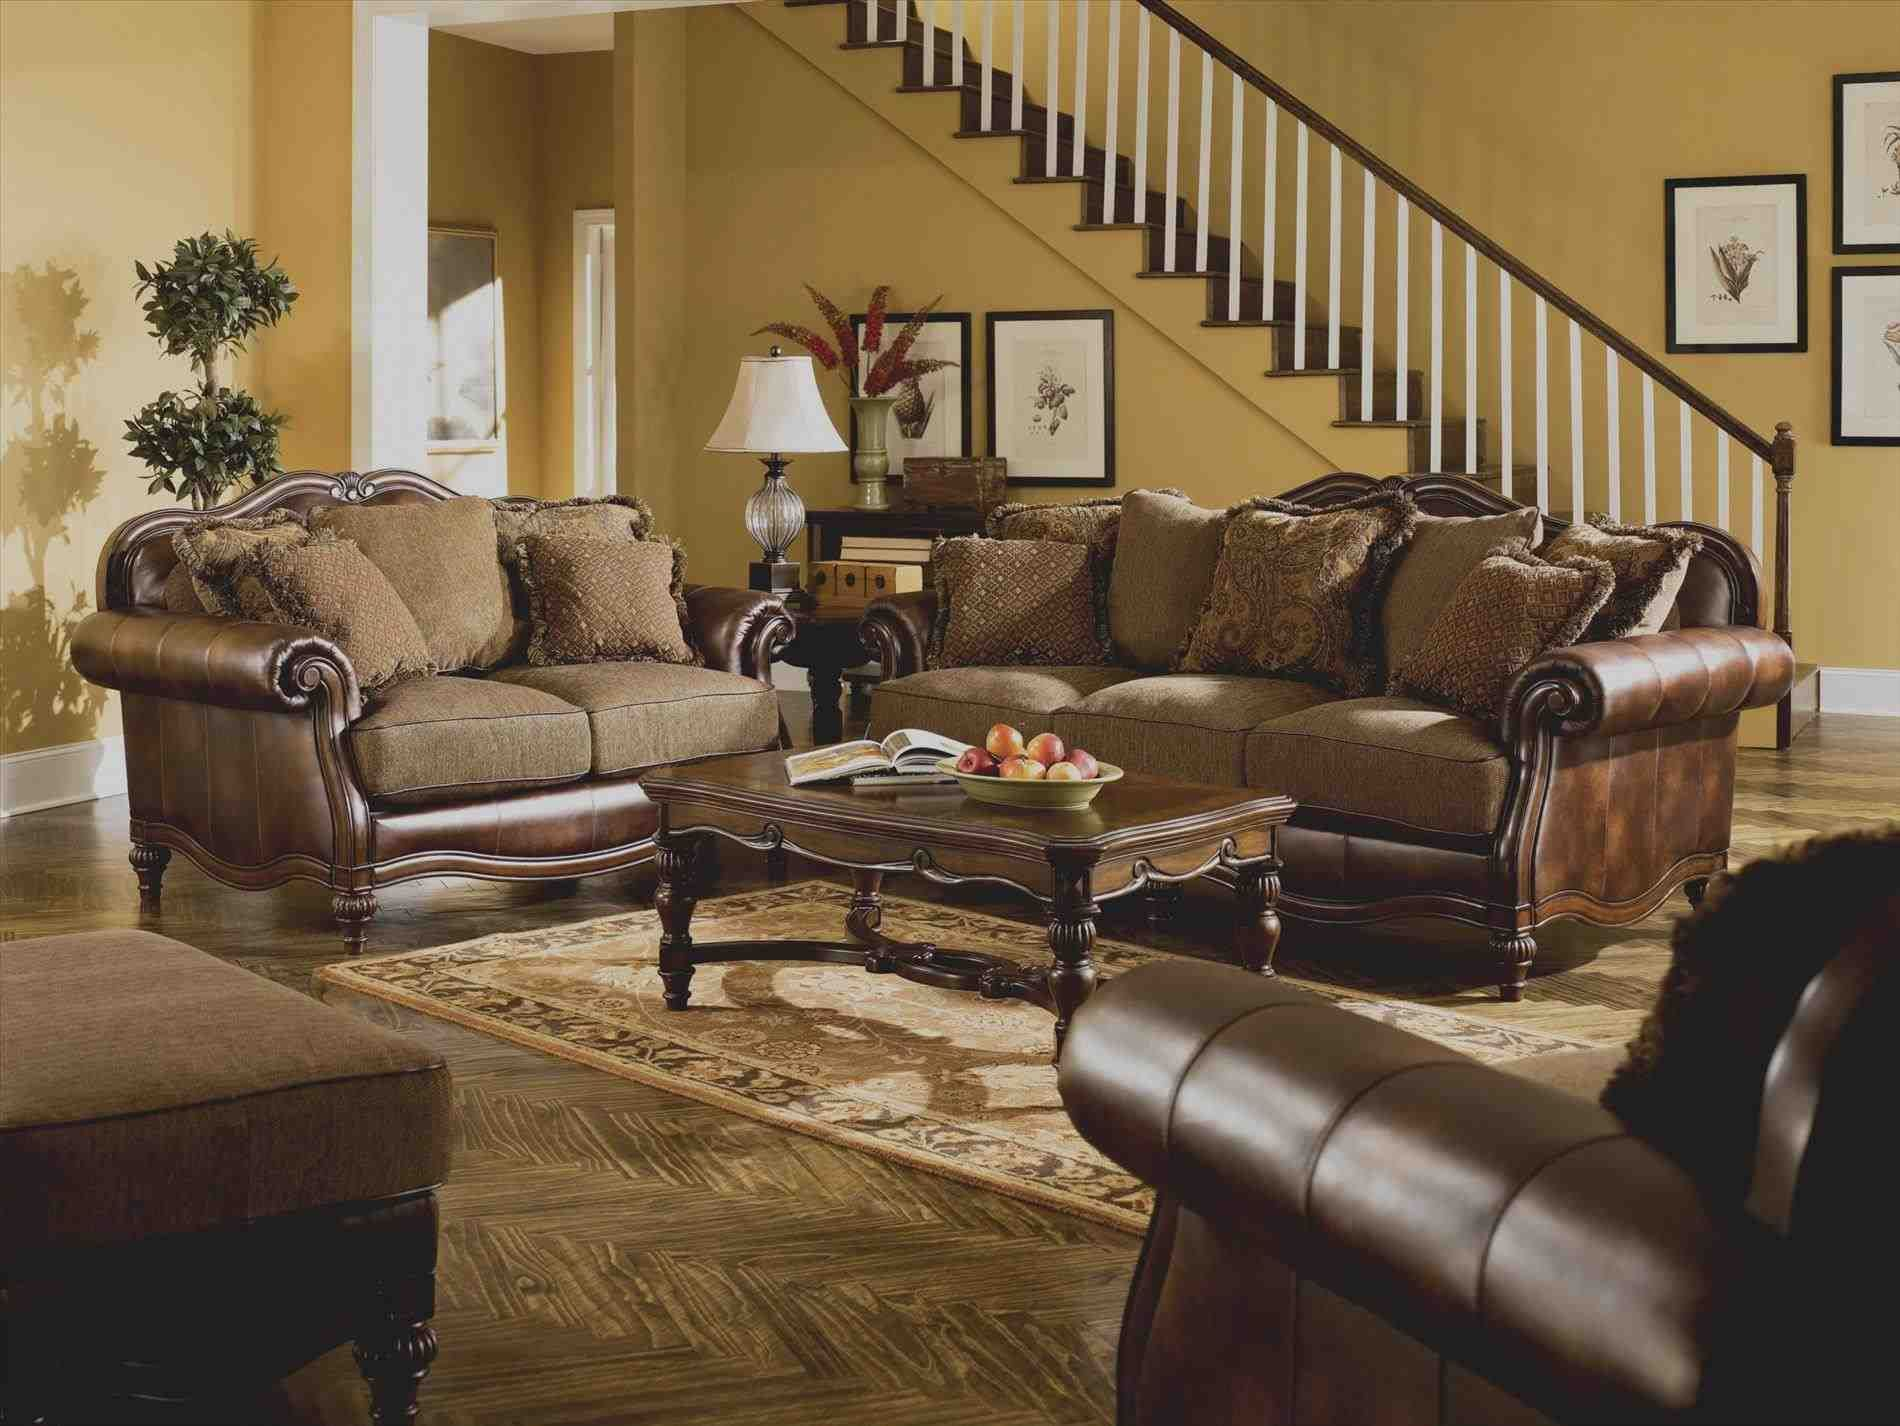 Cheap Living Room Furniture Sets Online - full size of chair:sofa